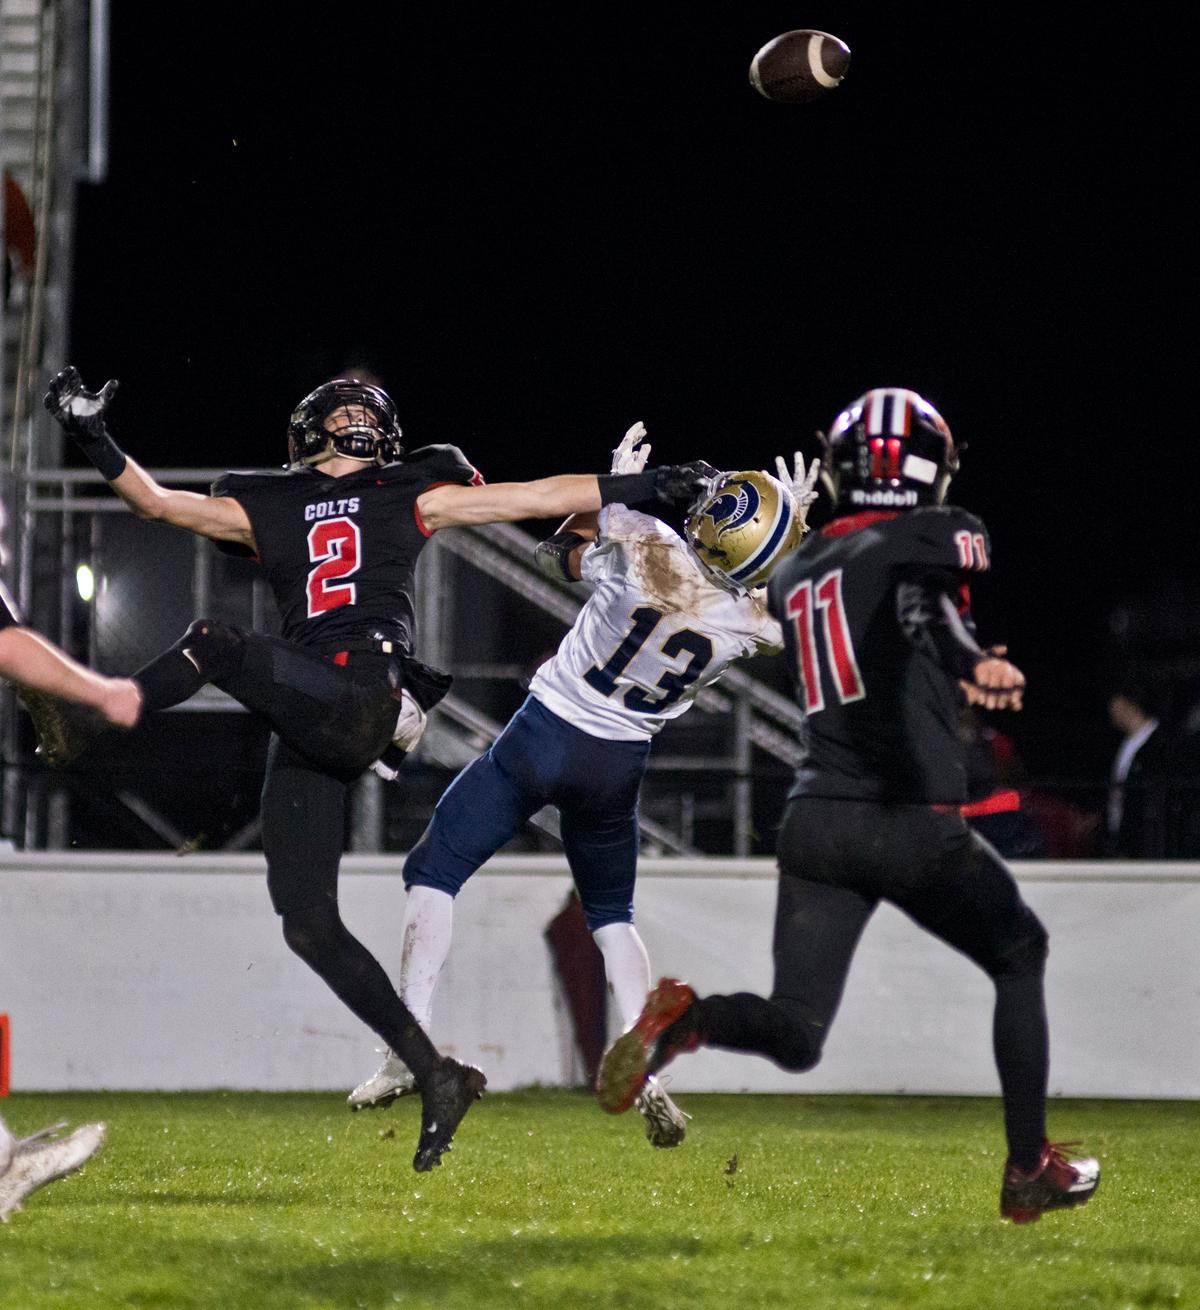 Thurston Colts defensive back D.J. Stedman (#2), Marist Spartans wide receiver Hagan Stephenson (#13) and Colts defensive back Trevor Duran (#11) all fight for a passed ball. Thurston defeated Marist 50 to 14 to seal the second position in their conference. Photo by Dan Morrison, Oregon News Lab